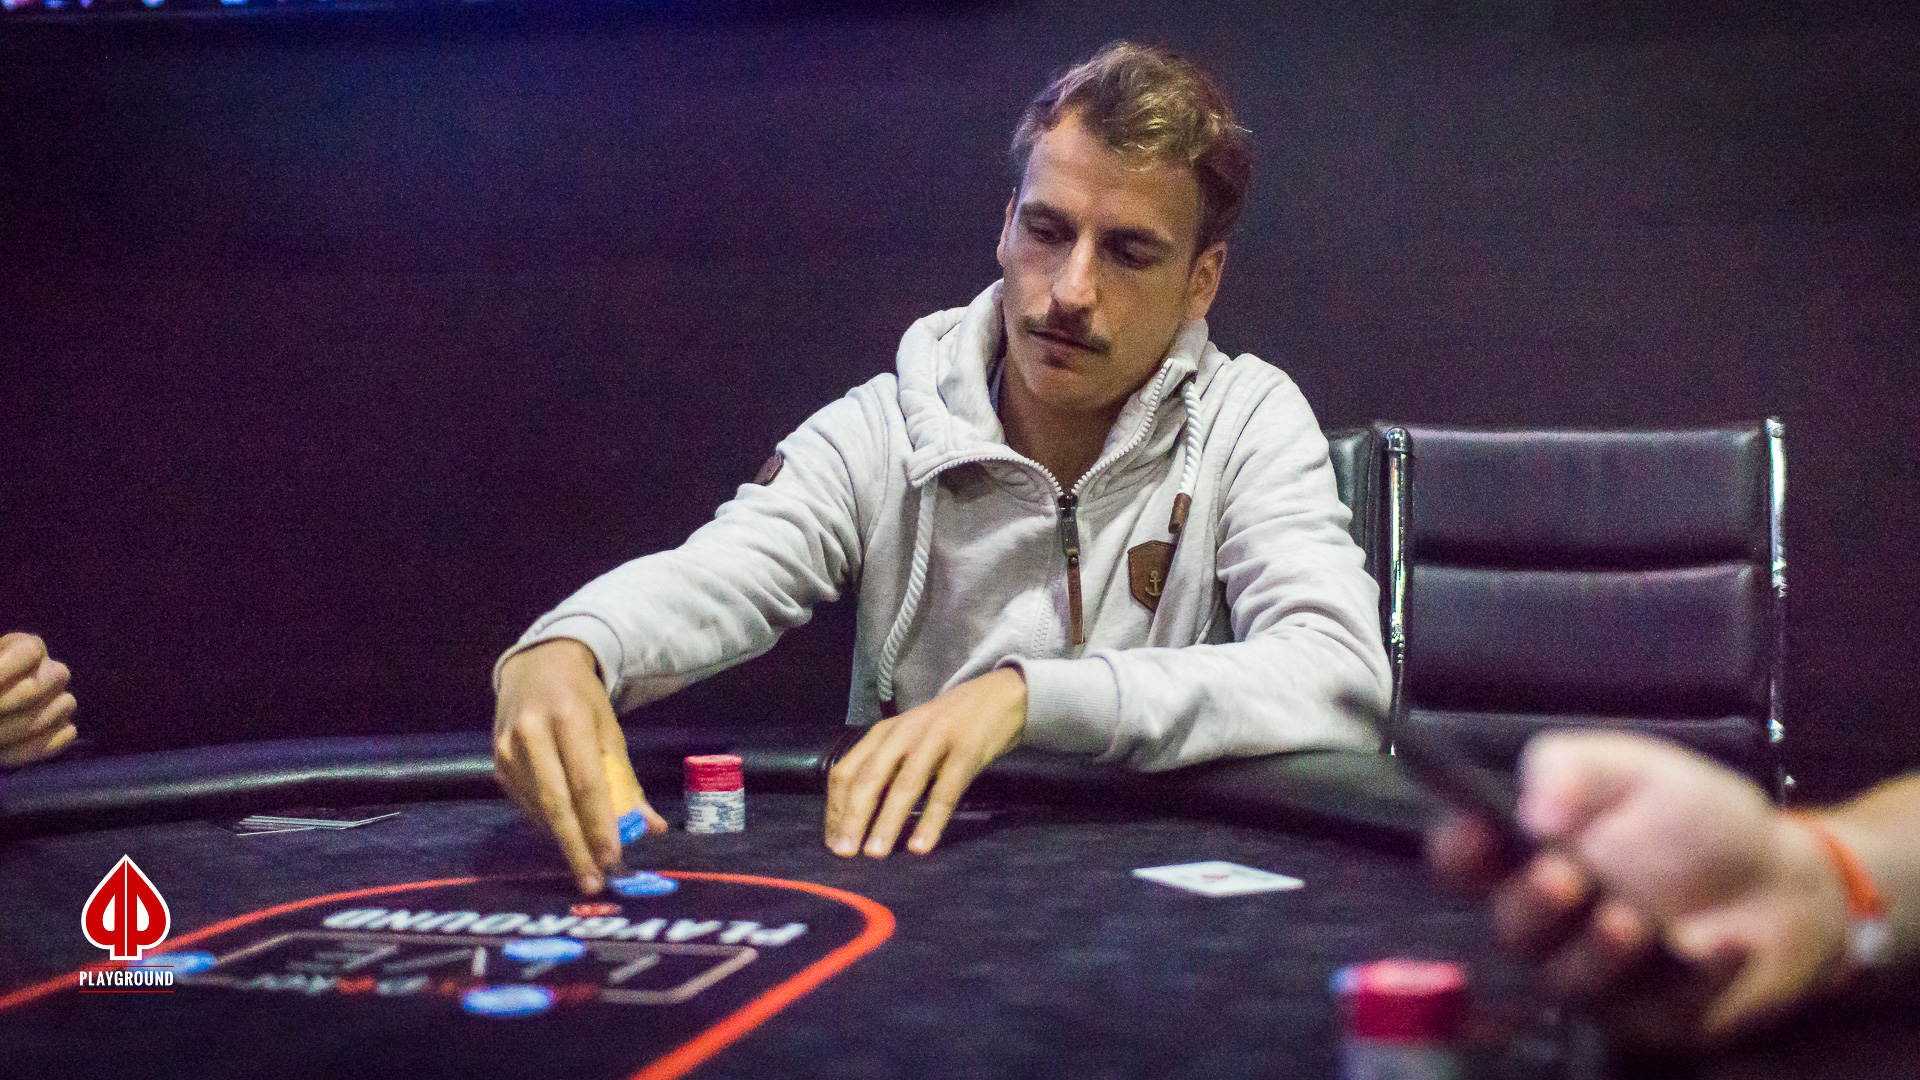 Philipp Gruissem has joined the action